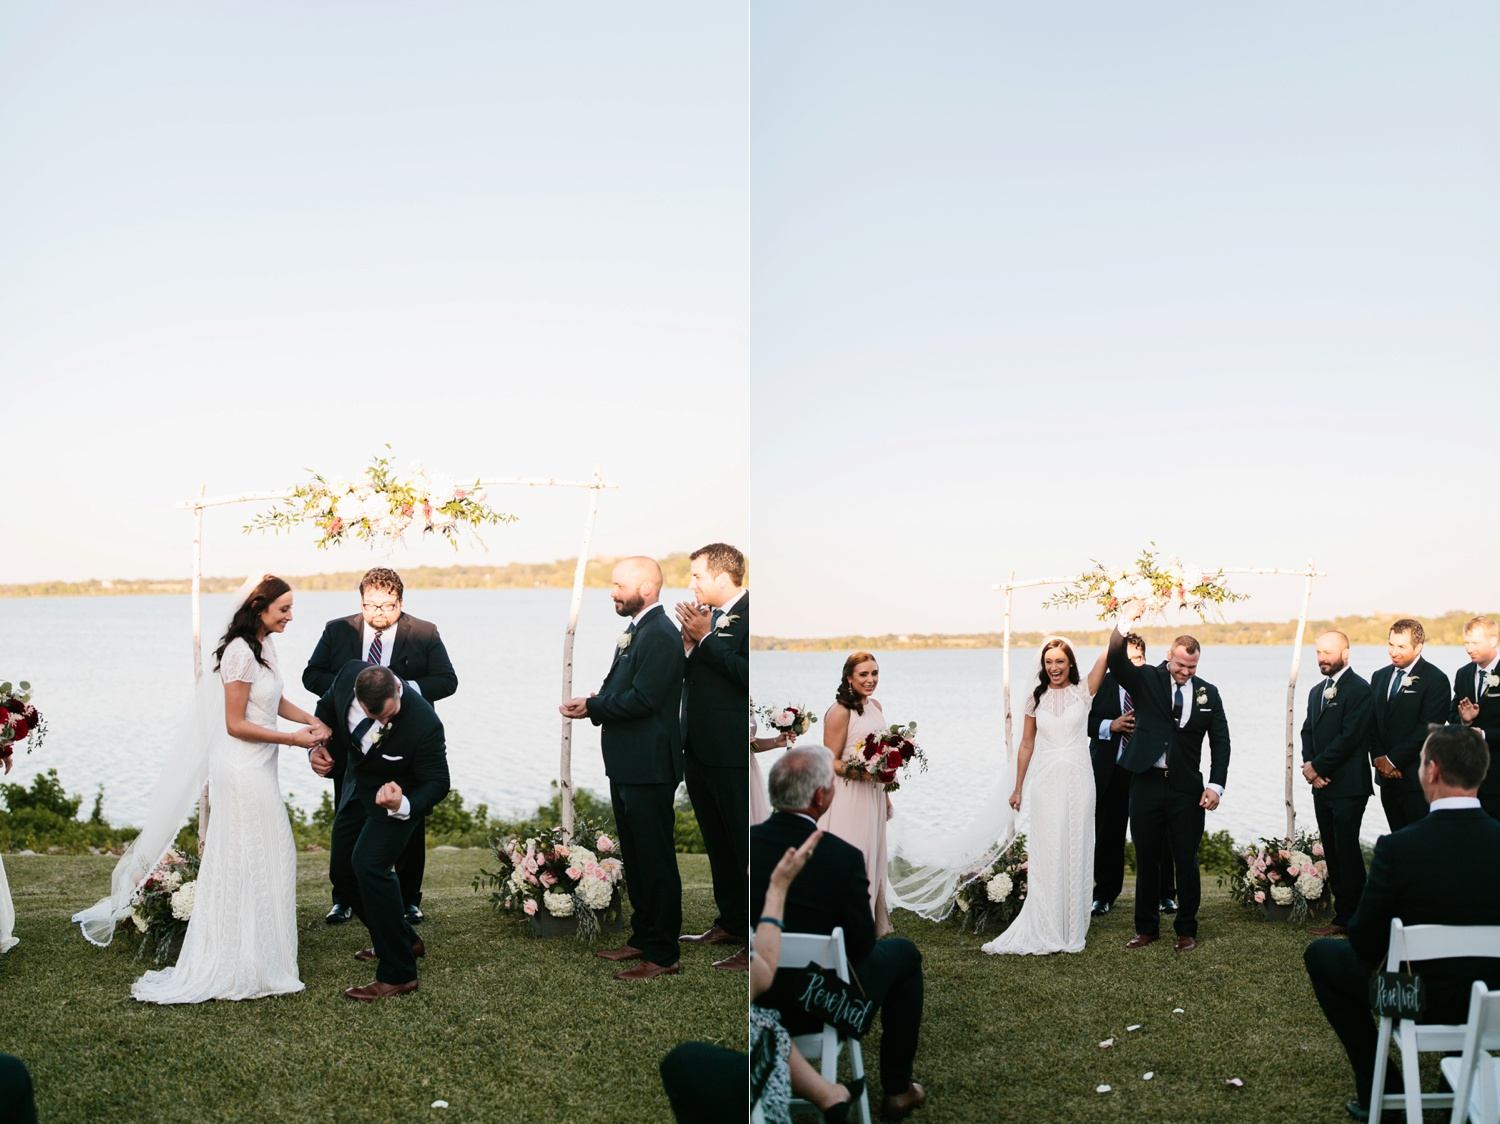 Kadee + Tyler | a raw, emotional wedding at the Filter Building on White Rock Lake in Dallas, TX by North Texas Wedding Photographer, Rachel Meagan Photography 146